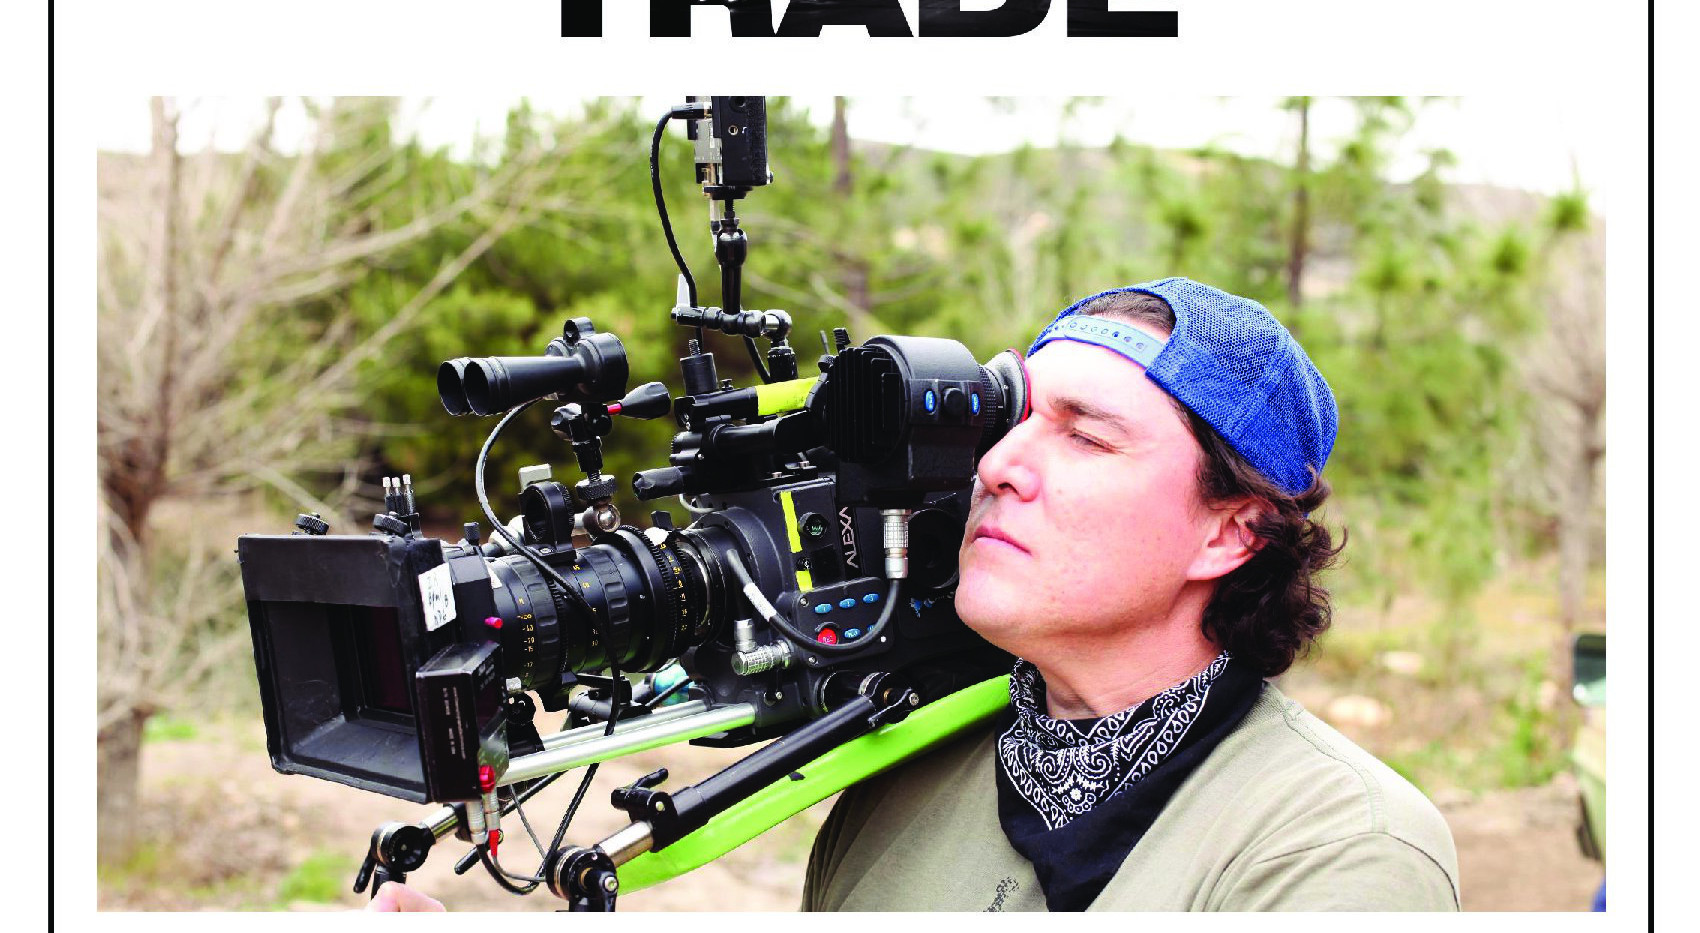 TRADE the film - Alessandro Gentile, Cinematographer, Director of Photography